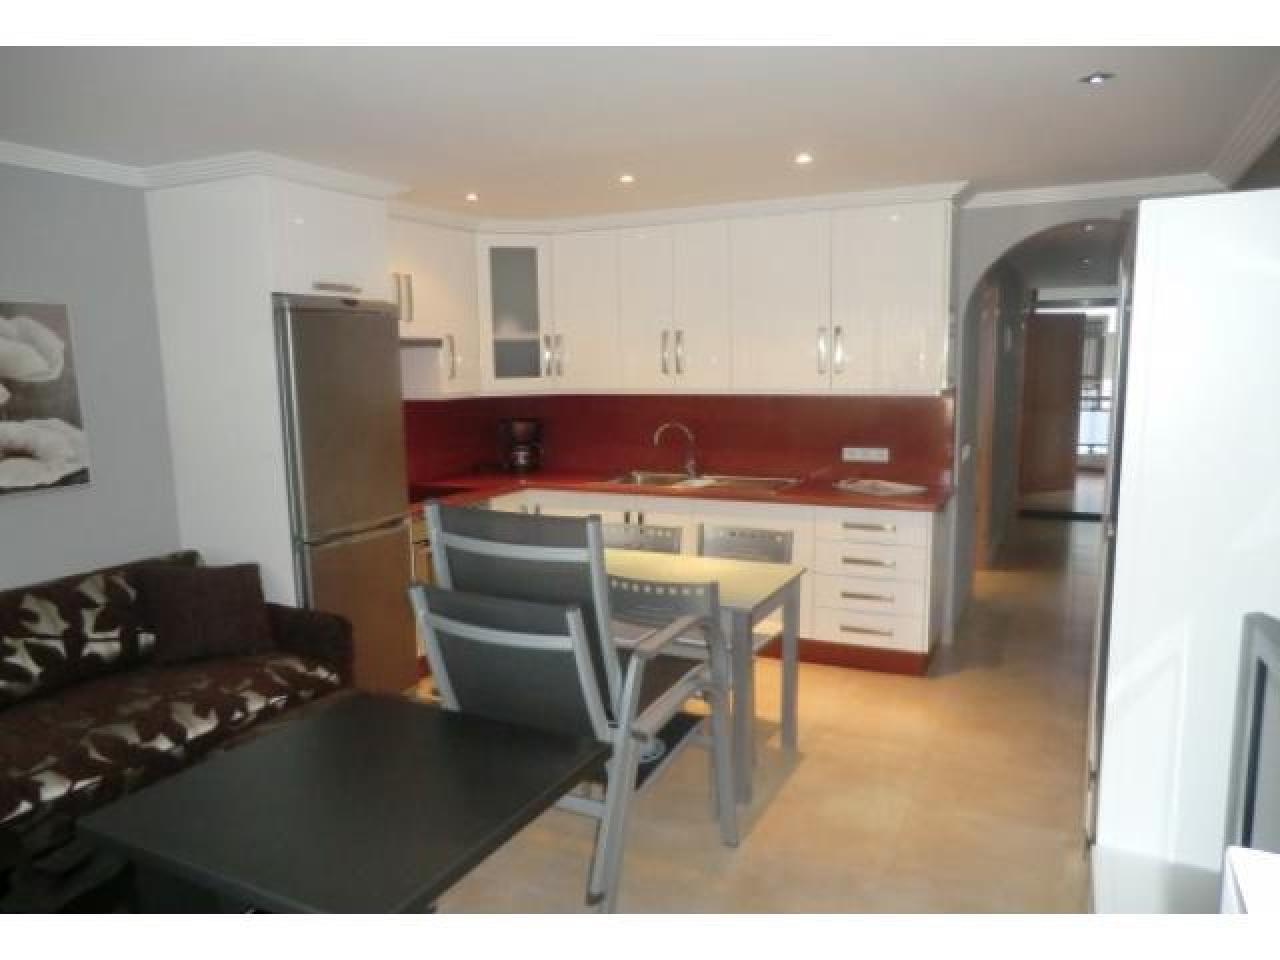 Real estate in Tenerife for sale » #646 - 1